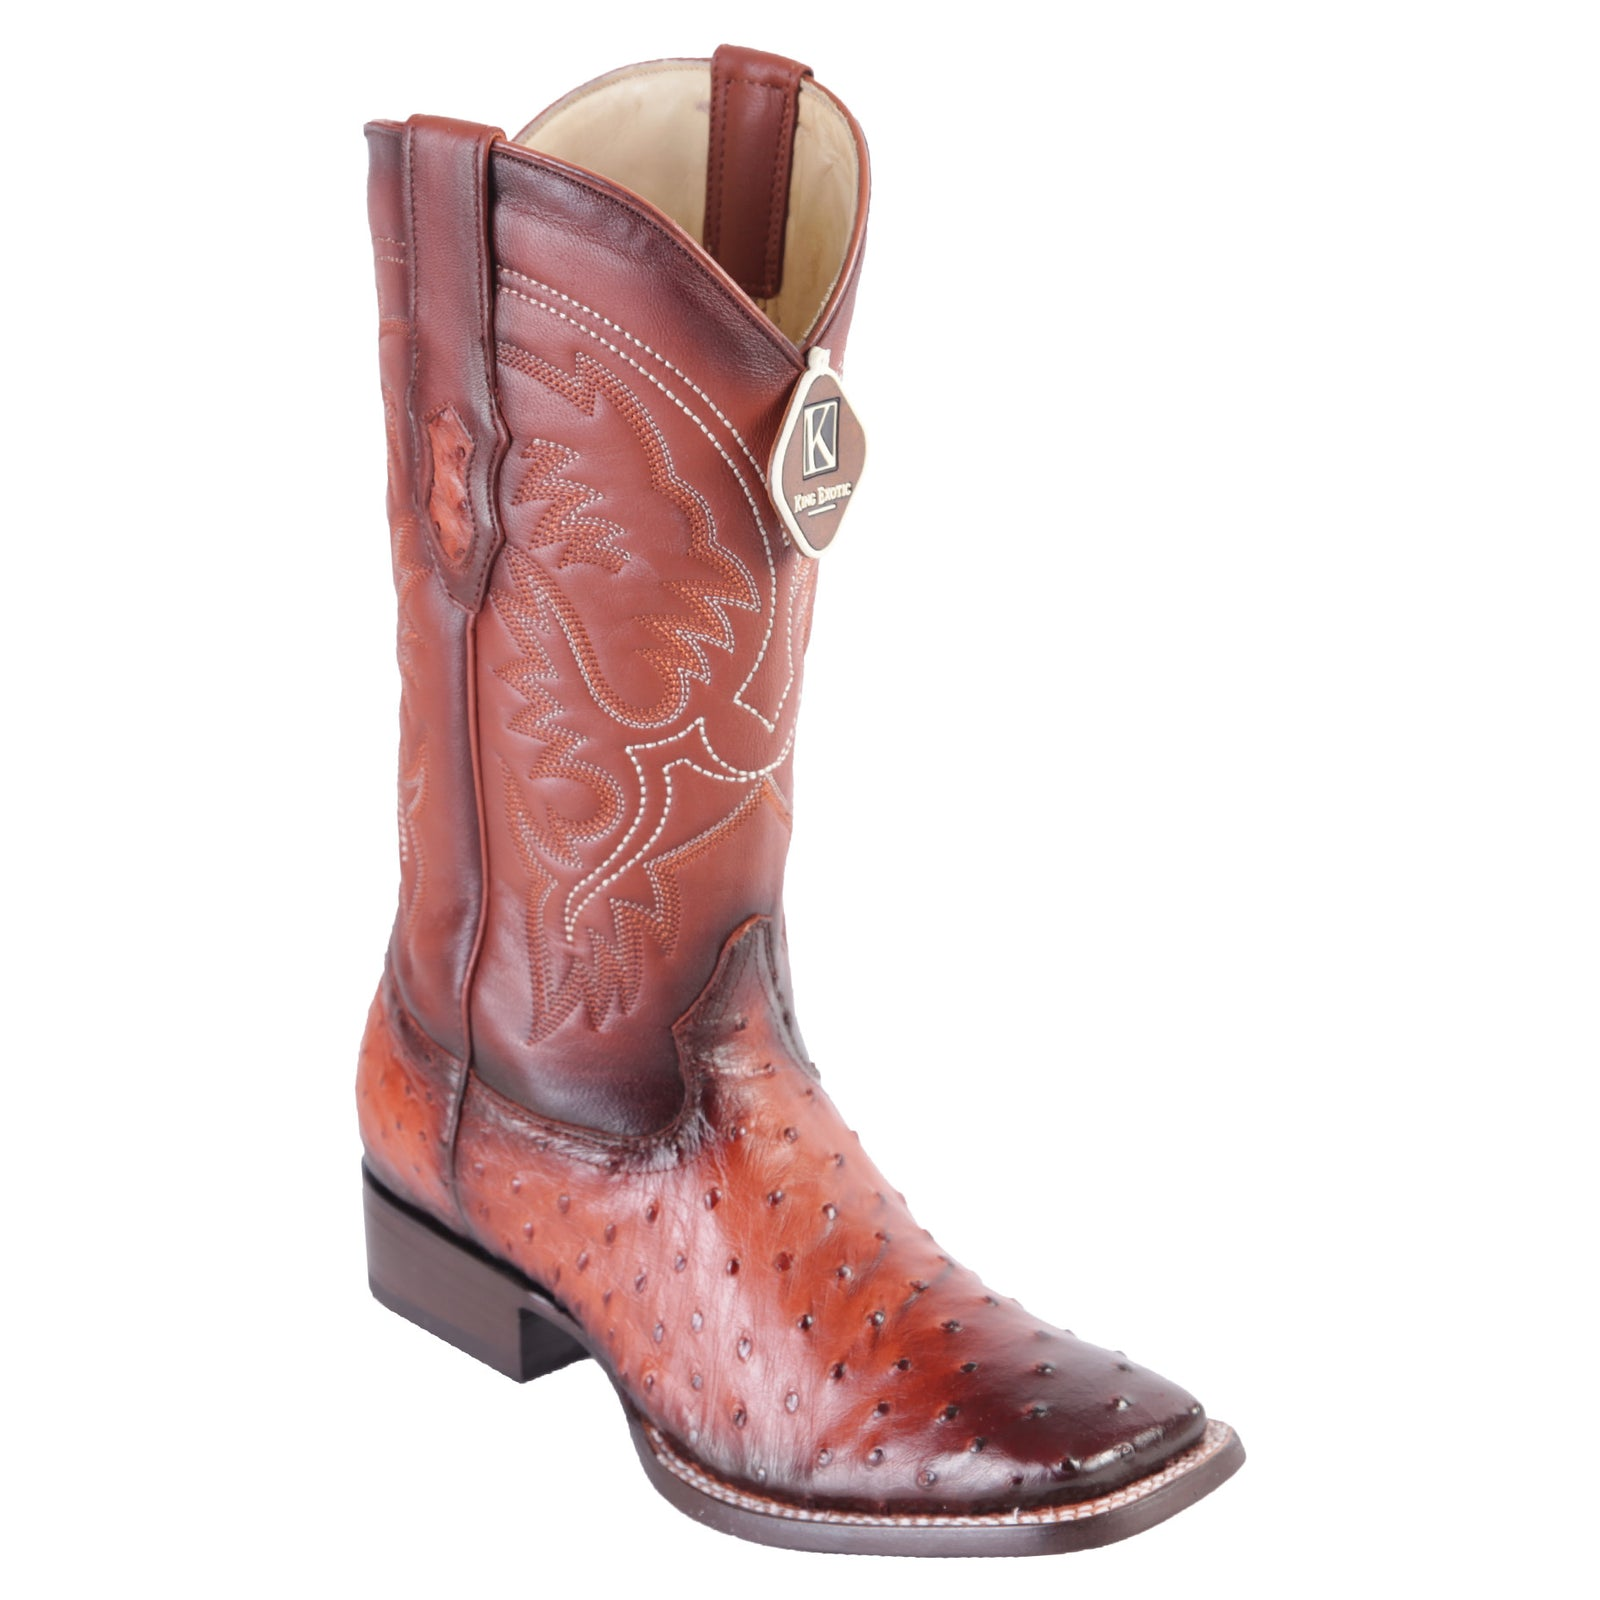 King Exotic Men's Faded Cognac Ostrich Cowboy Boot